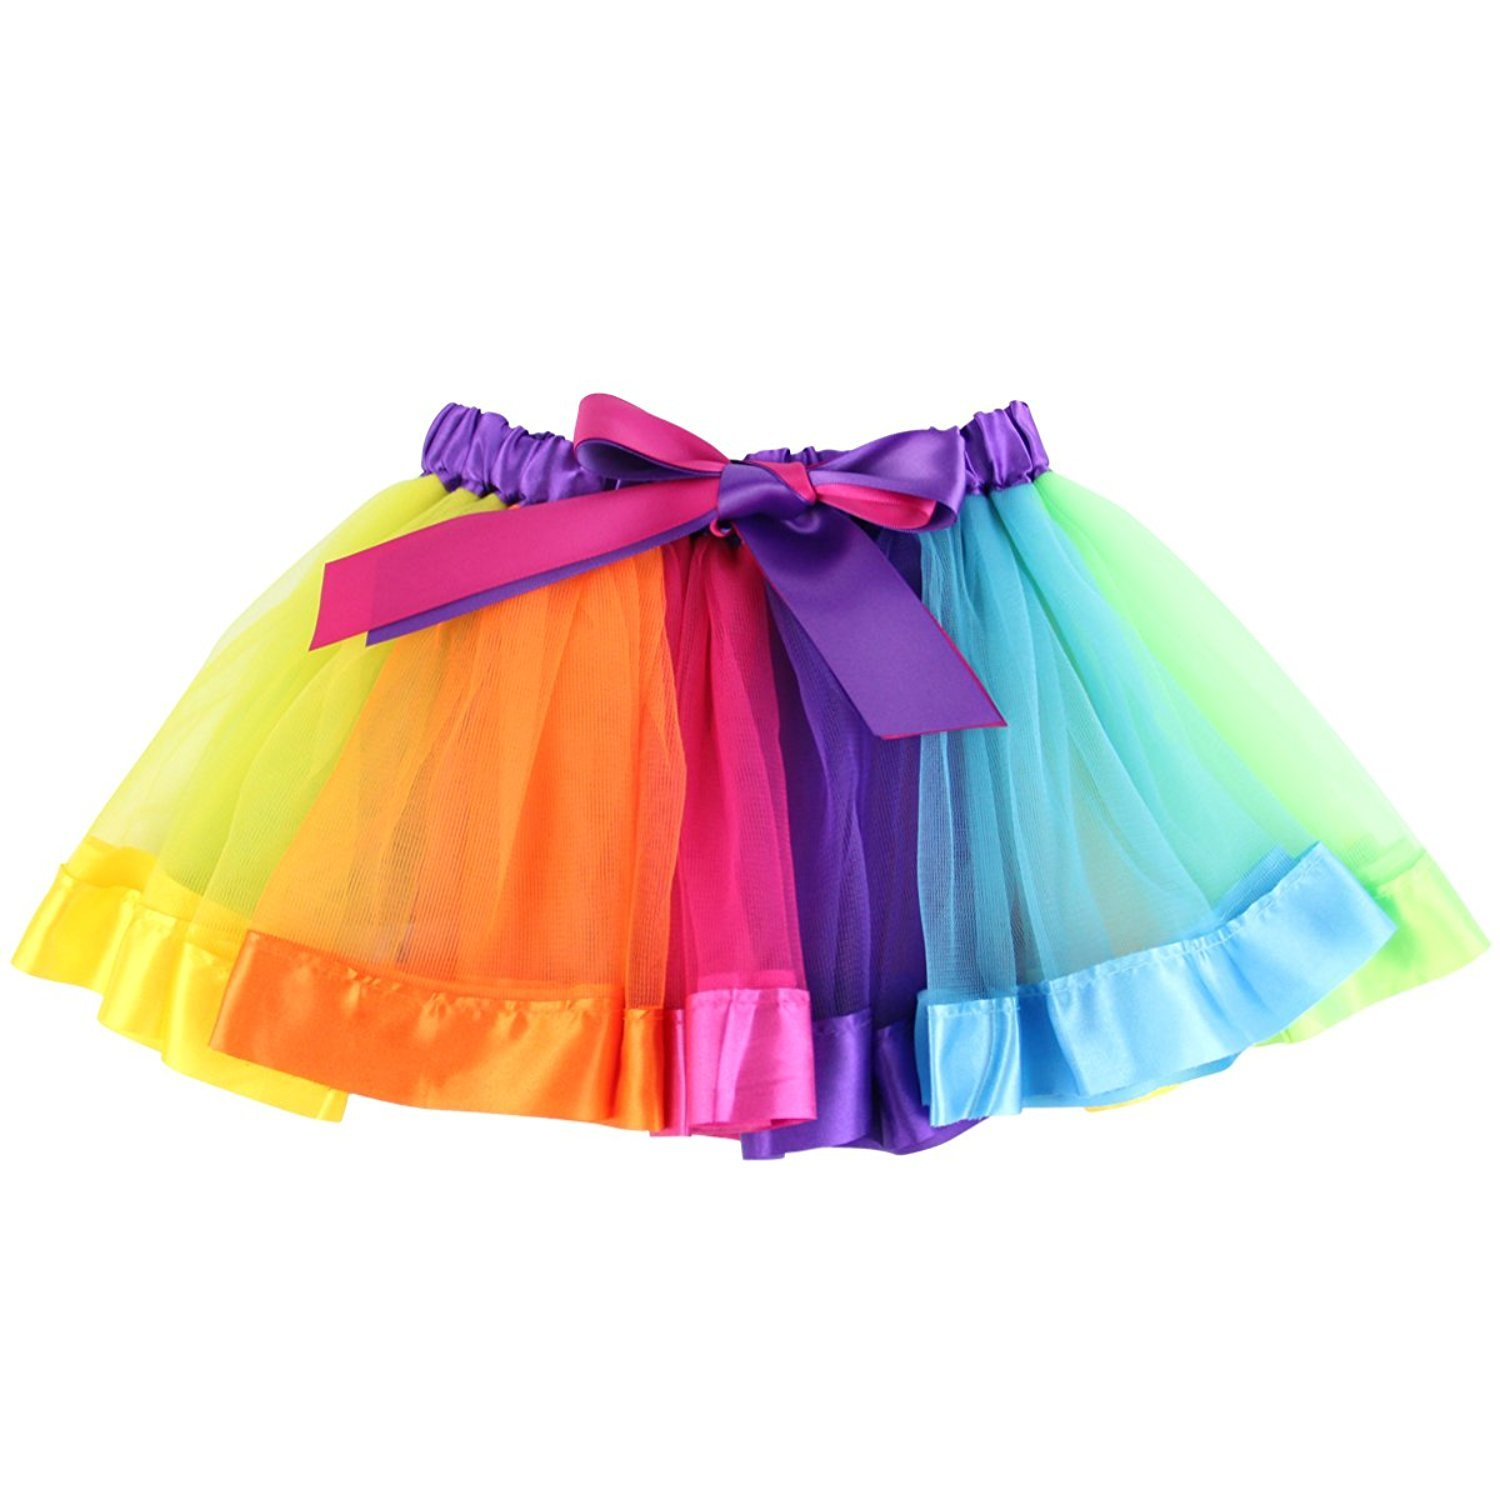 Geekercity Girls' Layered Rainbow Tutu Skirt Dance Dress Colorful Ruffle Tiered Tulle